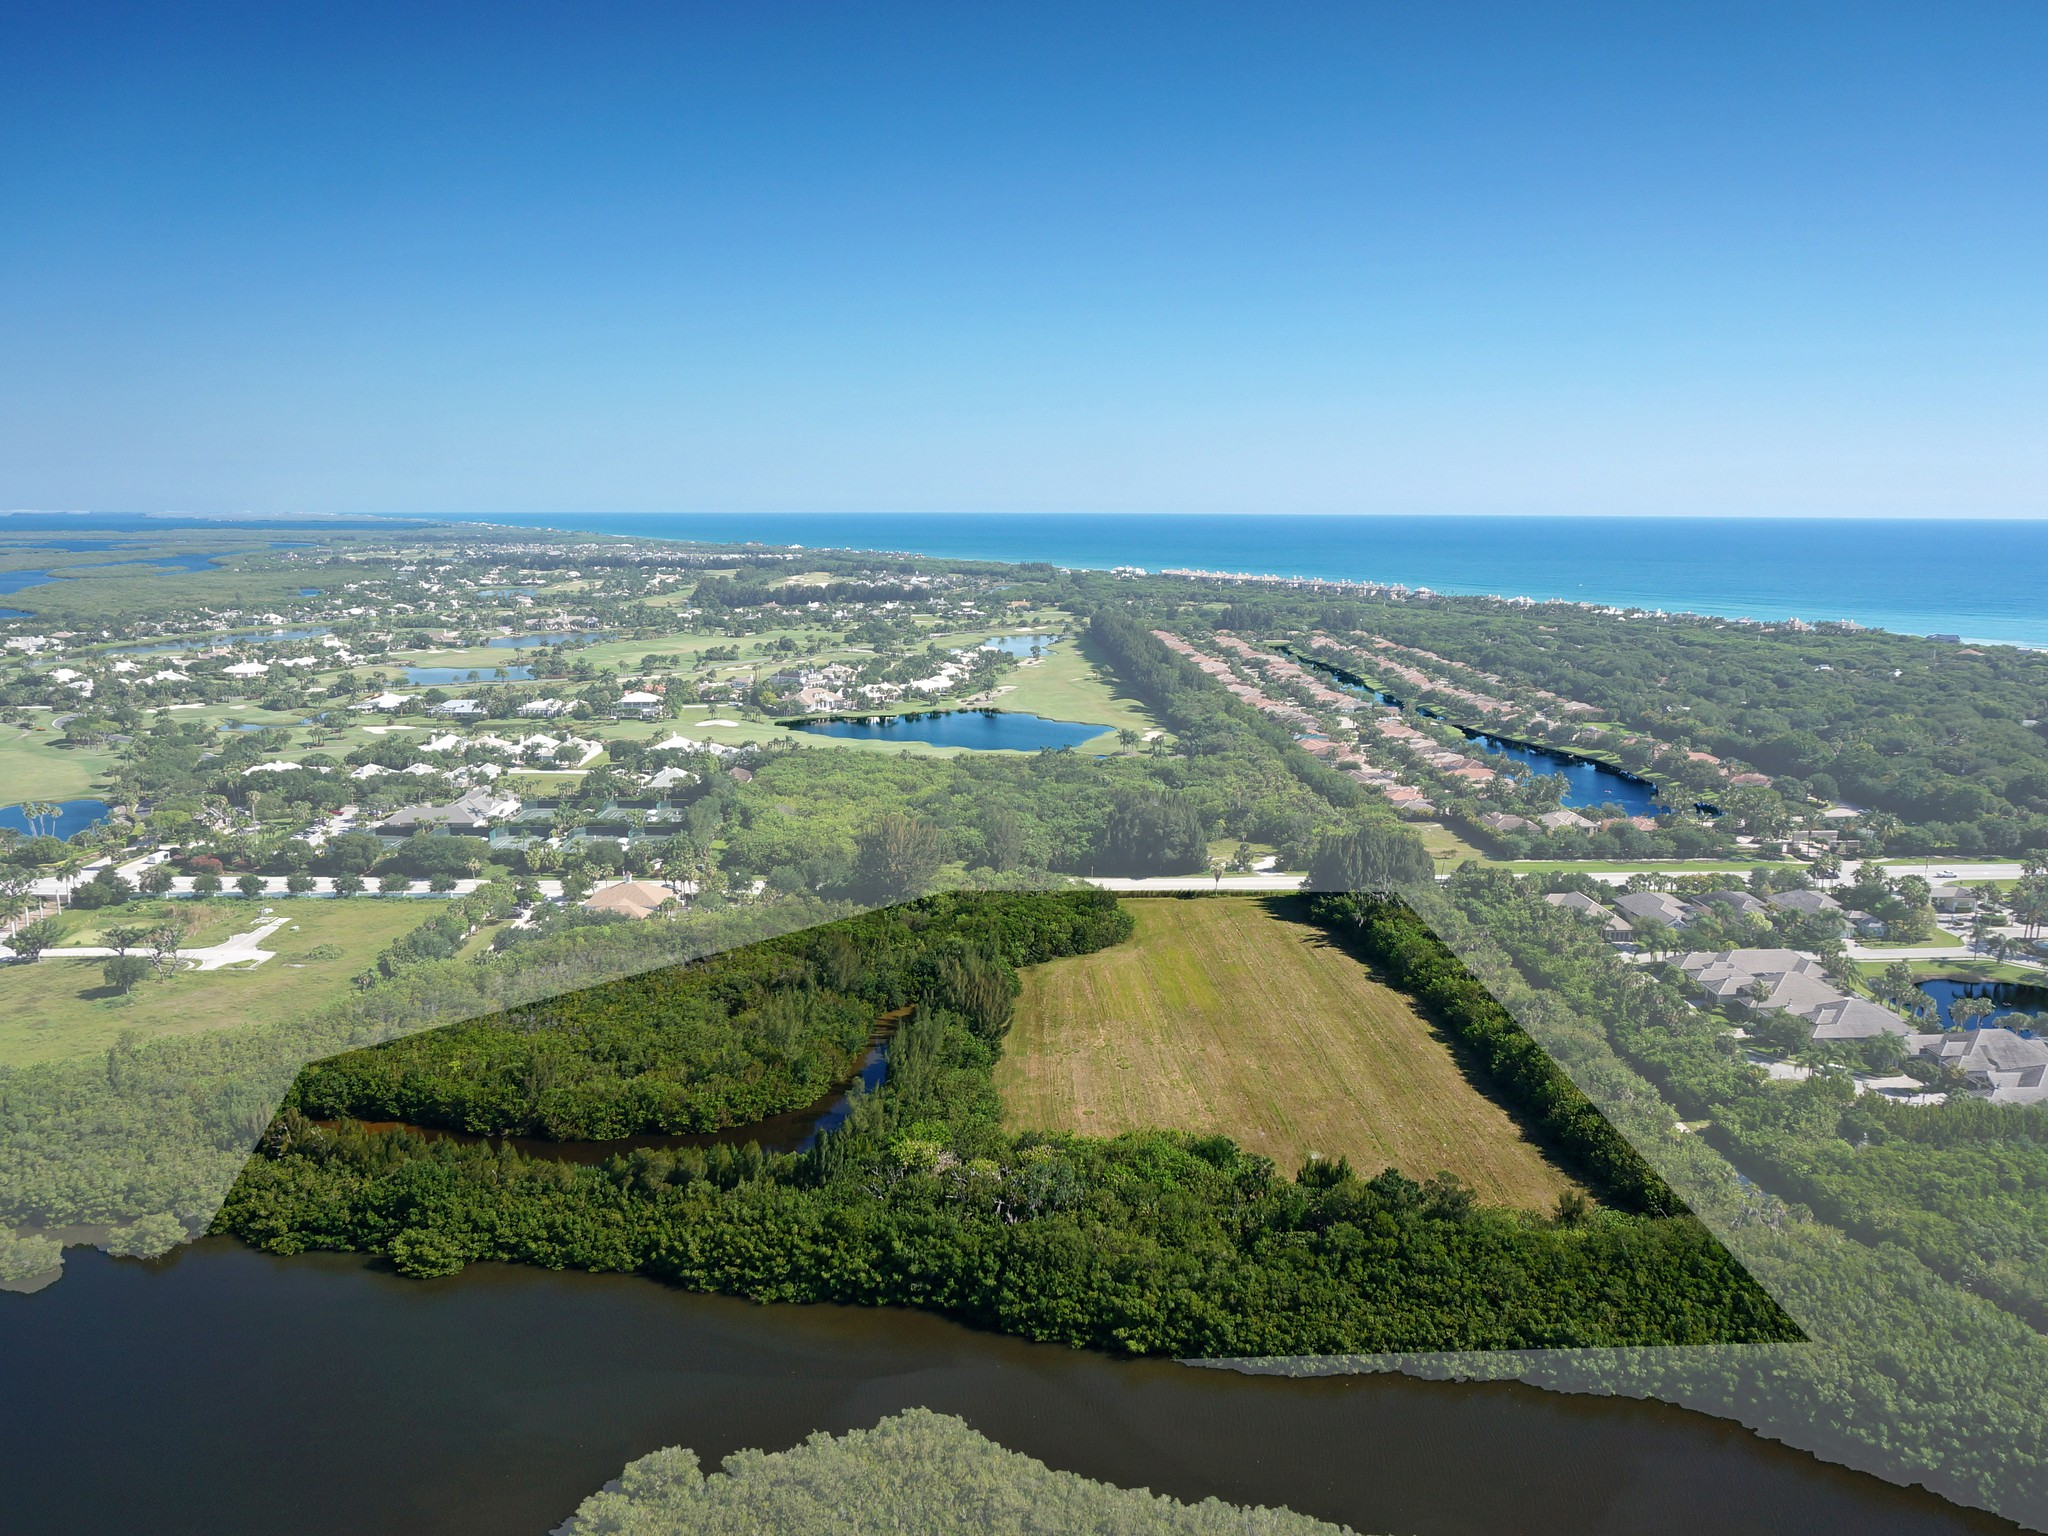 Terreno para Venda às Rare Waterfront Development C R 510 Vero Beach, Florida, 32963 Estados Unidos